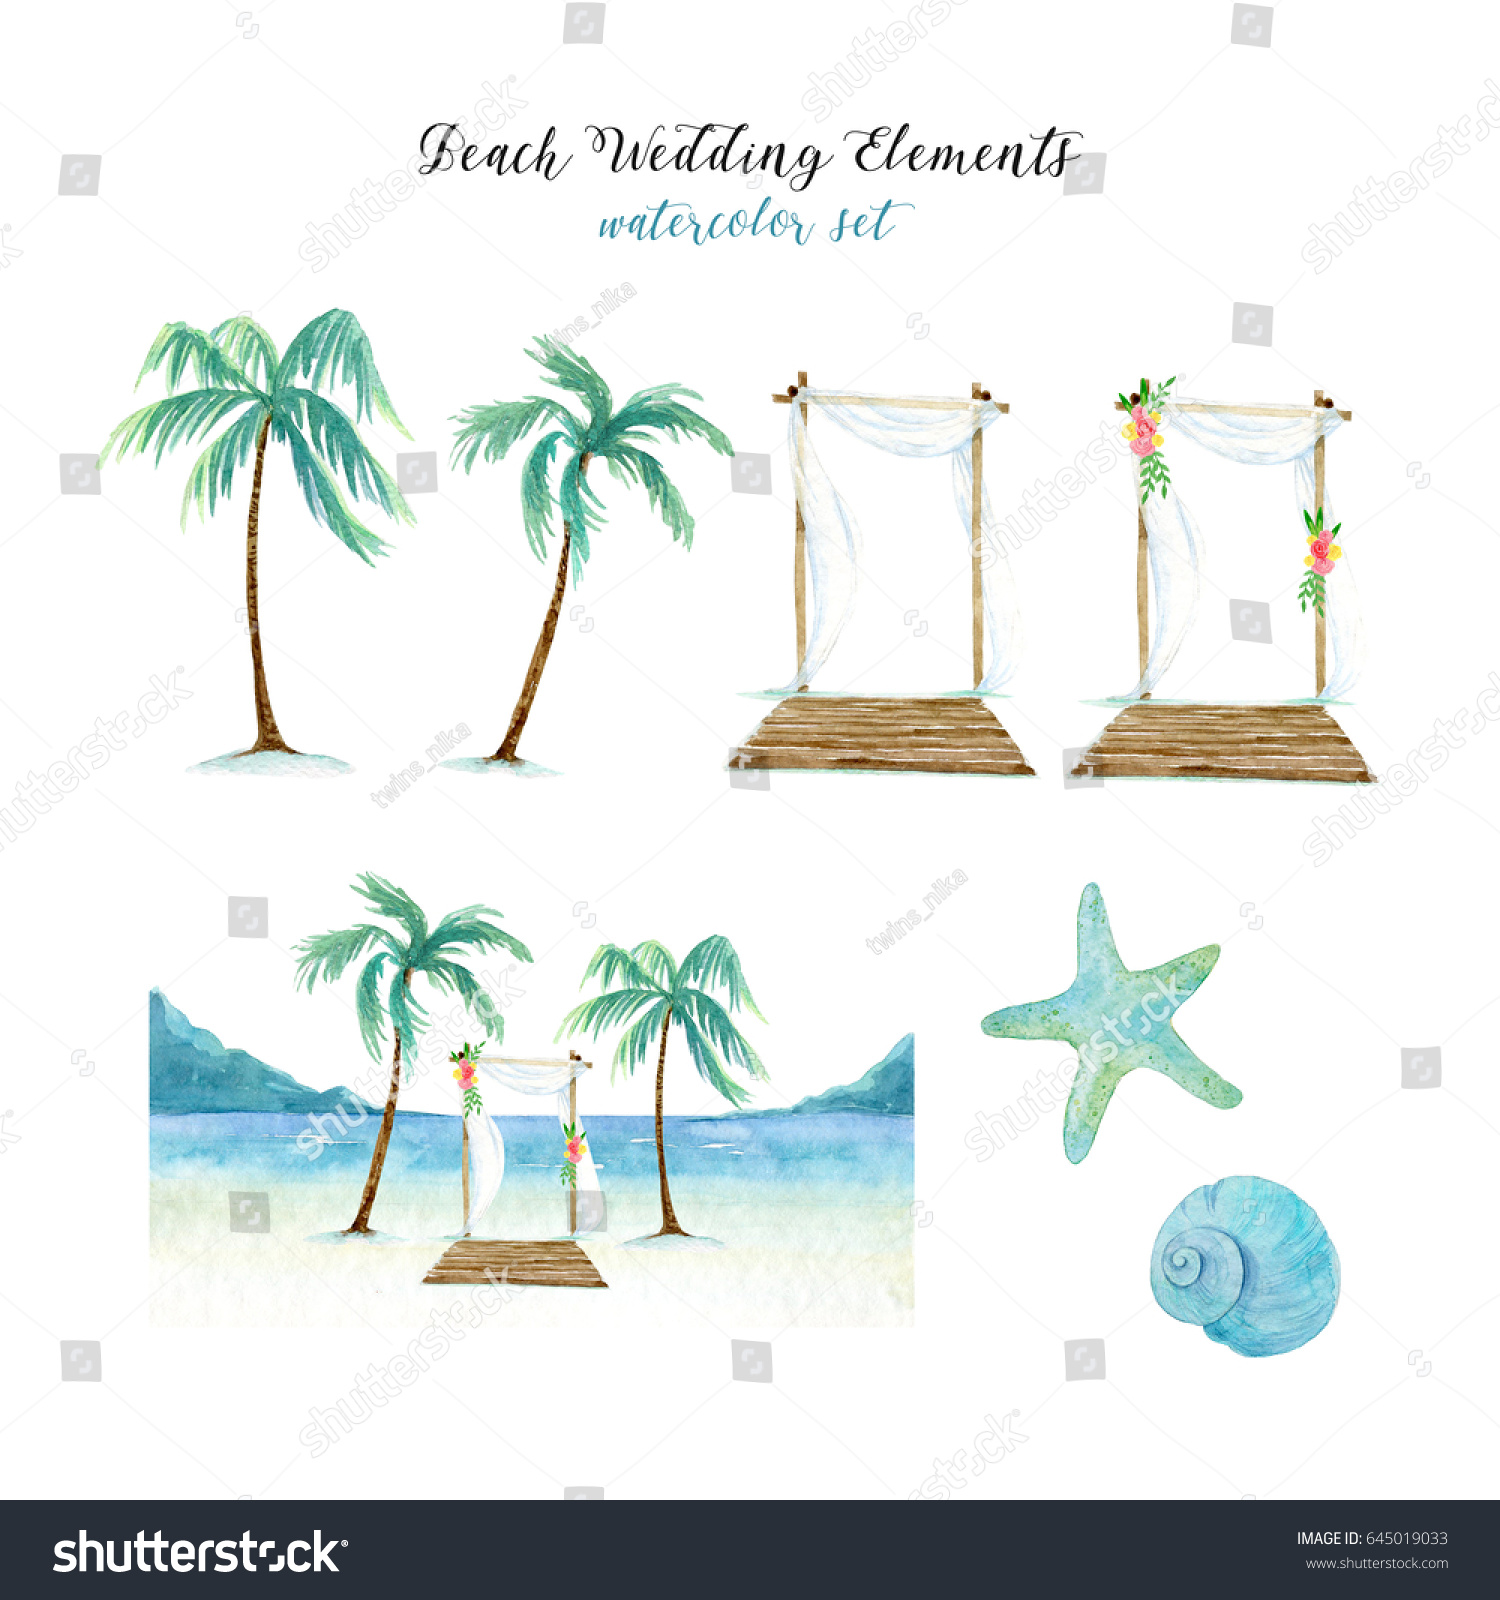 Beach Wedding Elements Watercolor Set Palm Stock Illustration ...